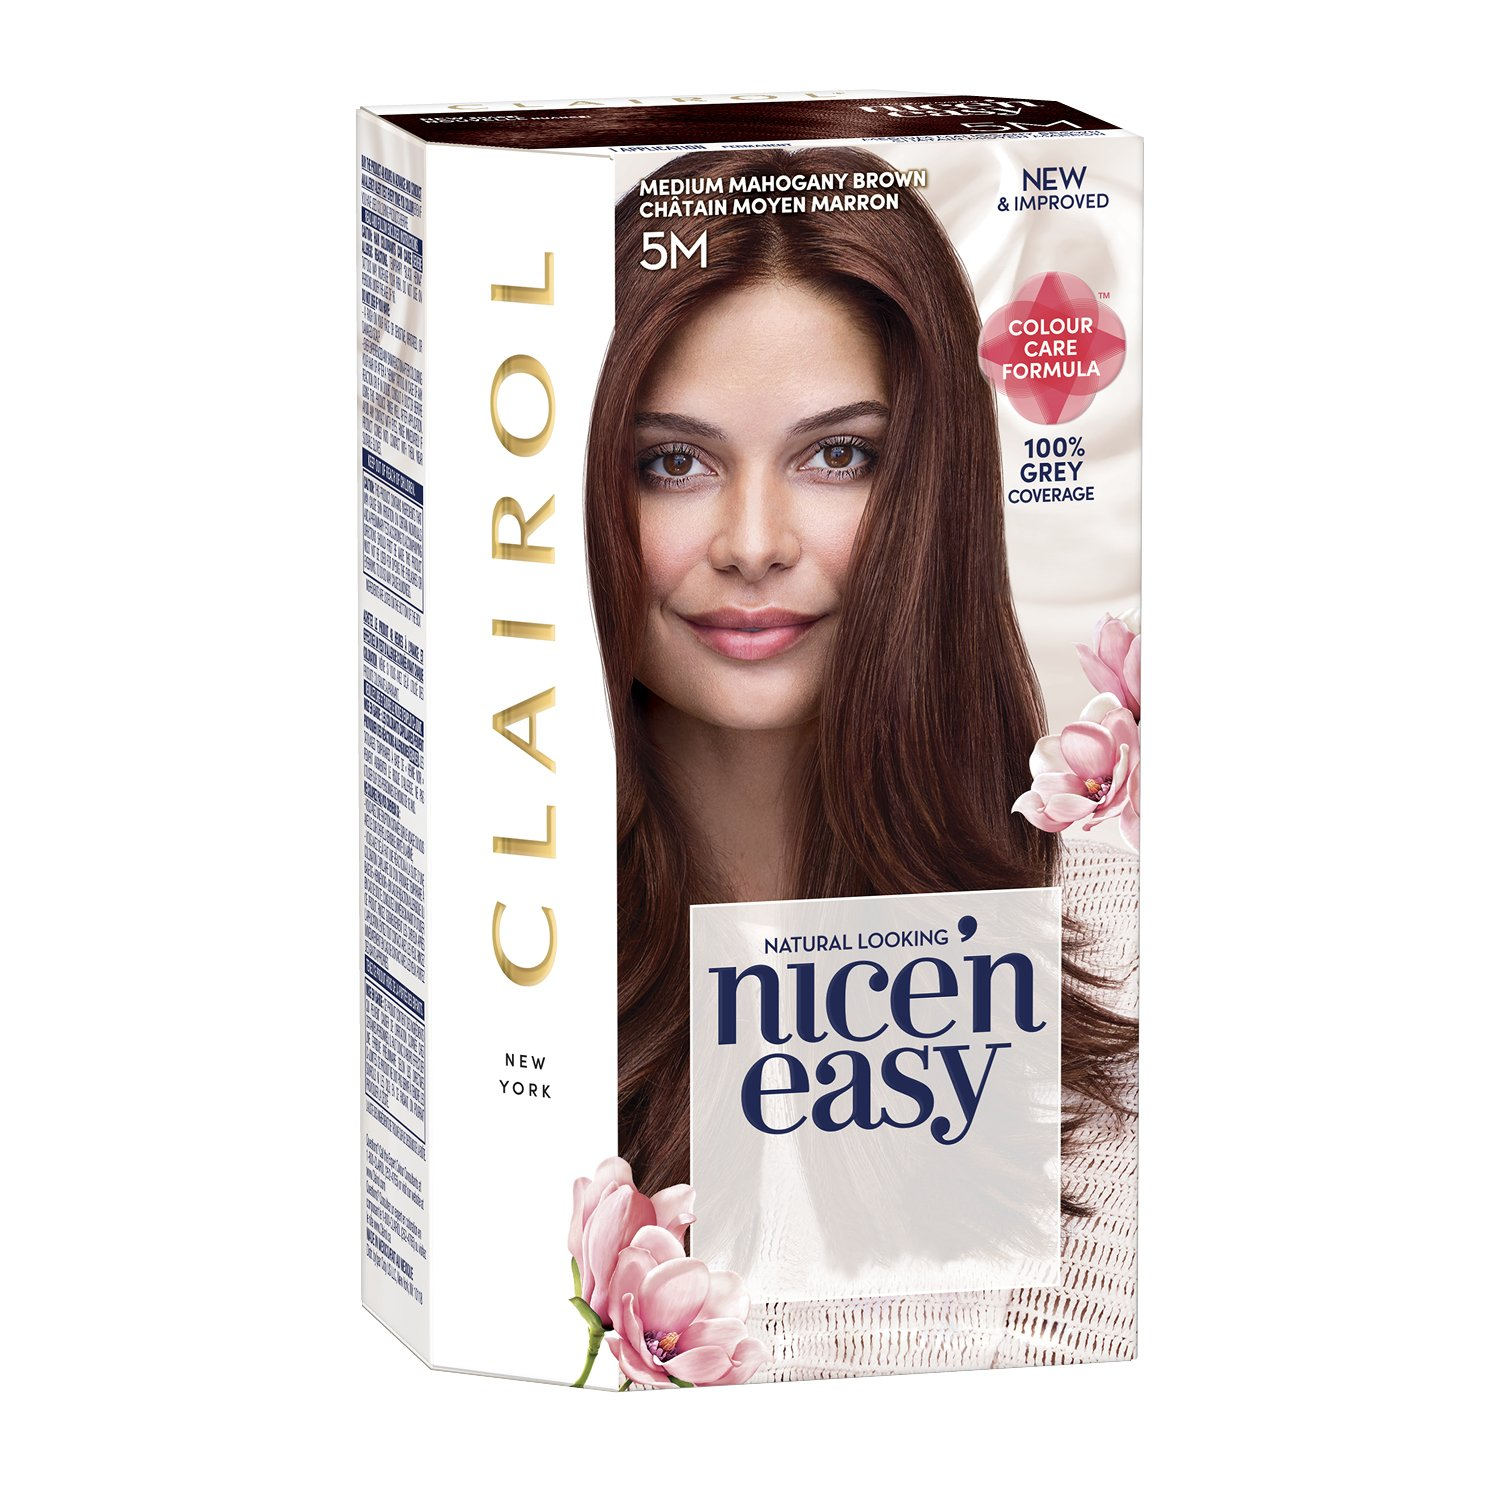 Clairol - Nice'n Easy Permanent Hair Color, Brunettes Coty